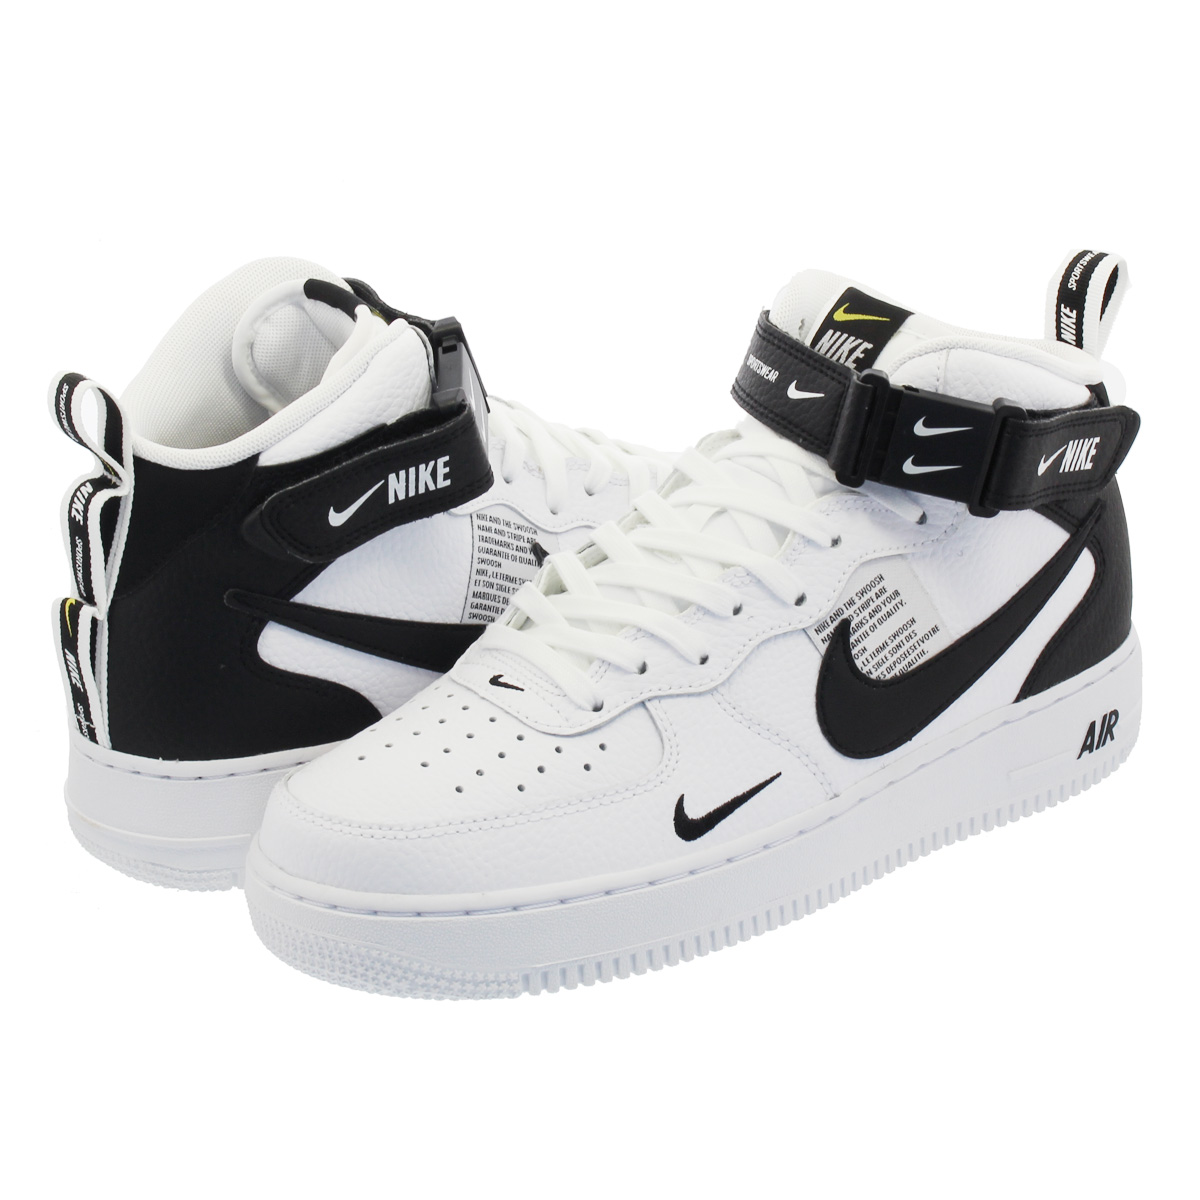 big sale fedc2 44411 NIKE AIR FORCE 1 MID '07 LV8 UTILITY Nike air force 1 mid '07 LV8 utility  WHITE/BLACK 804,609-103